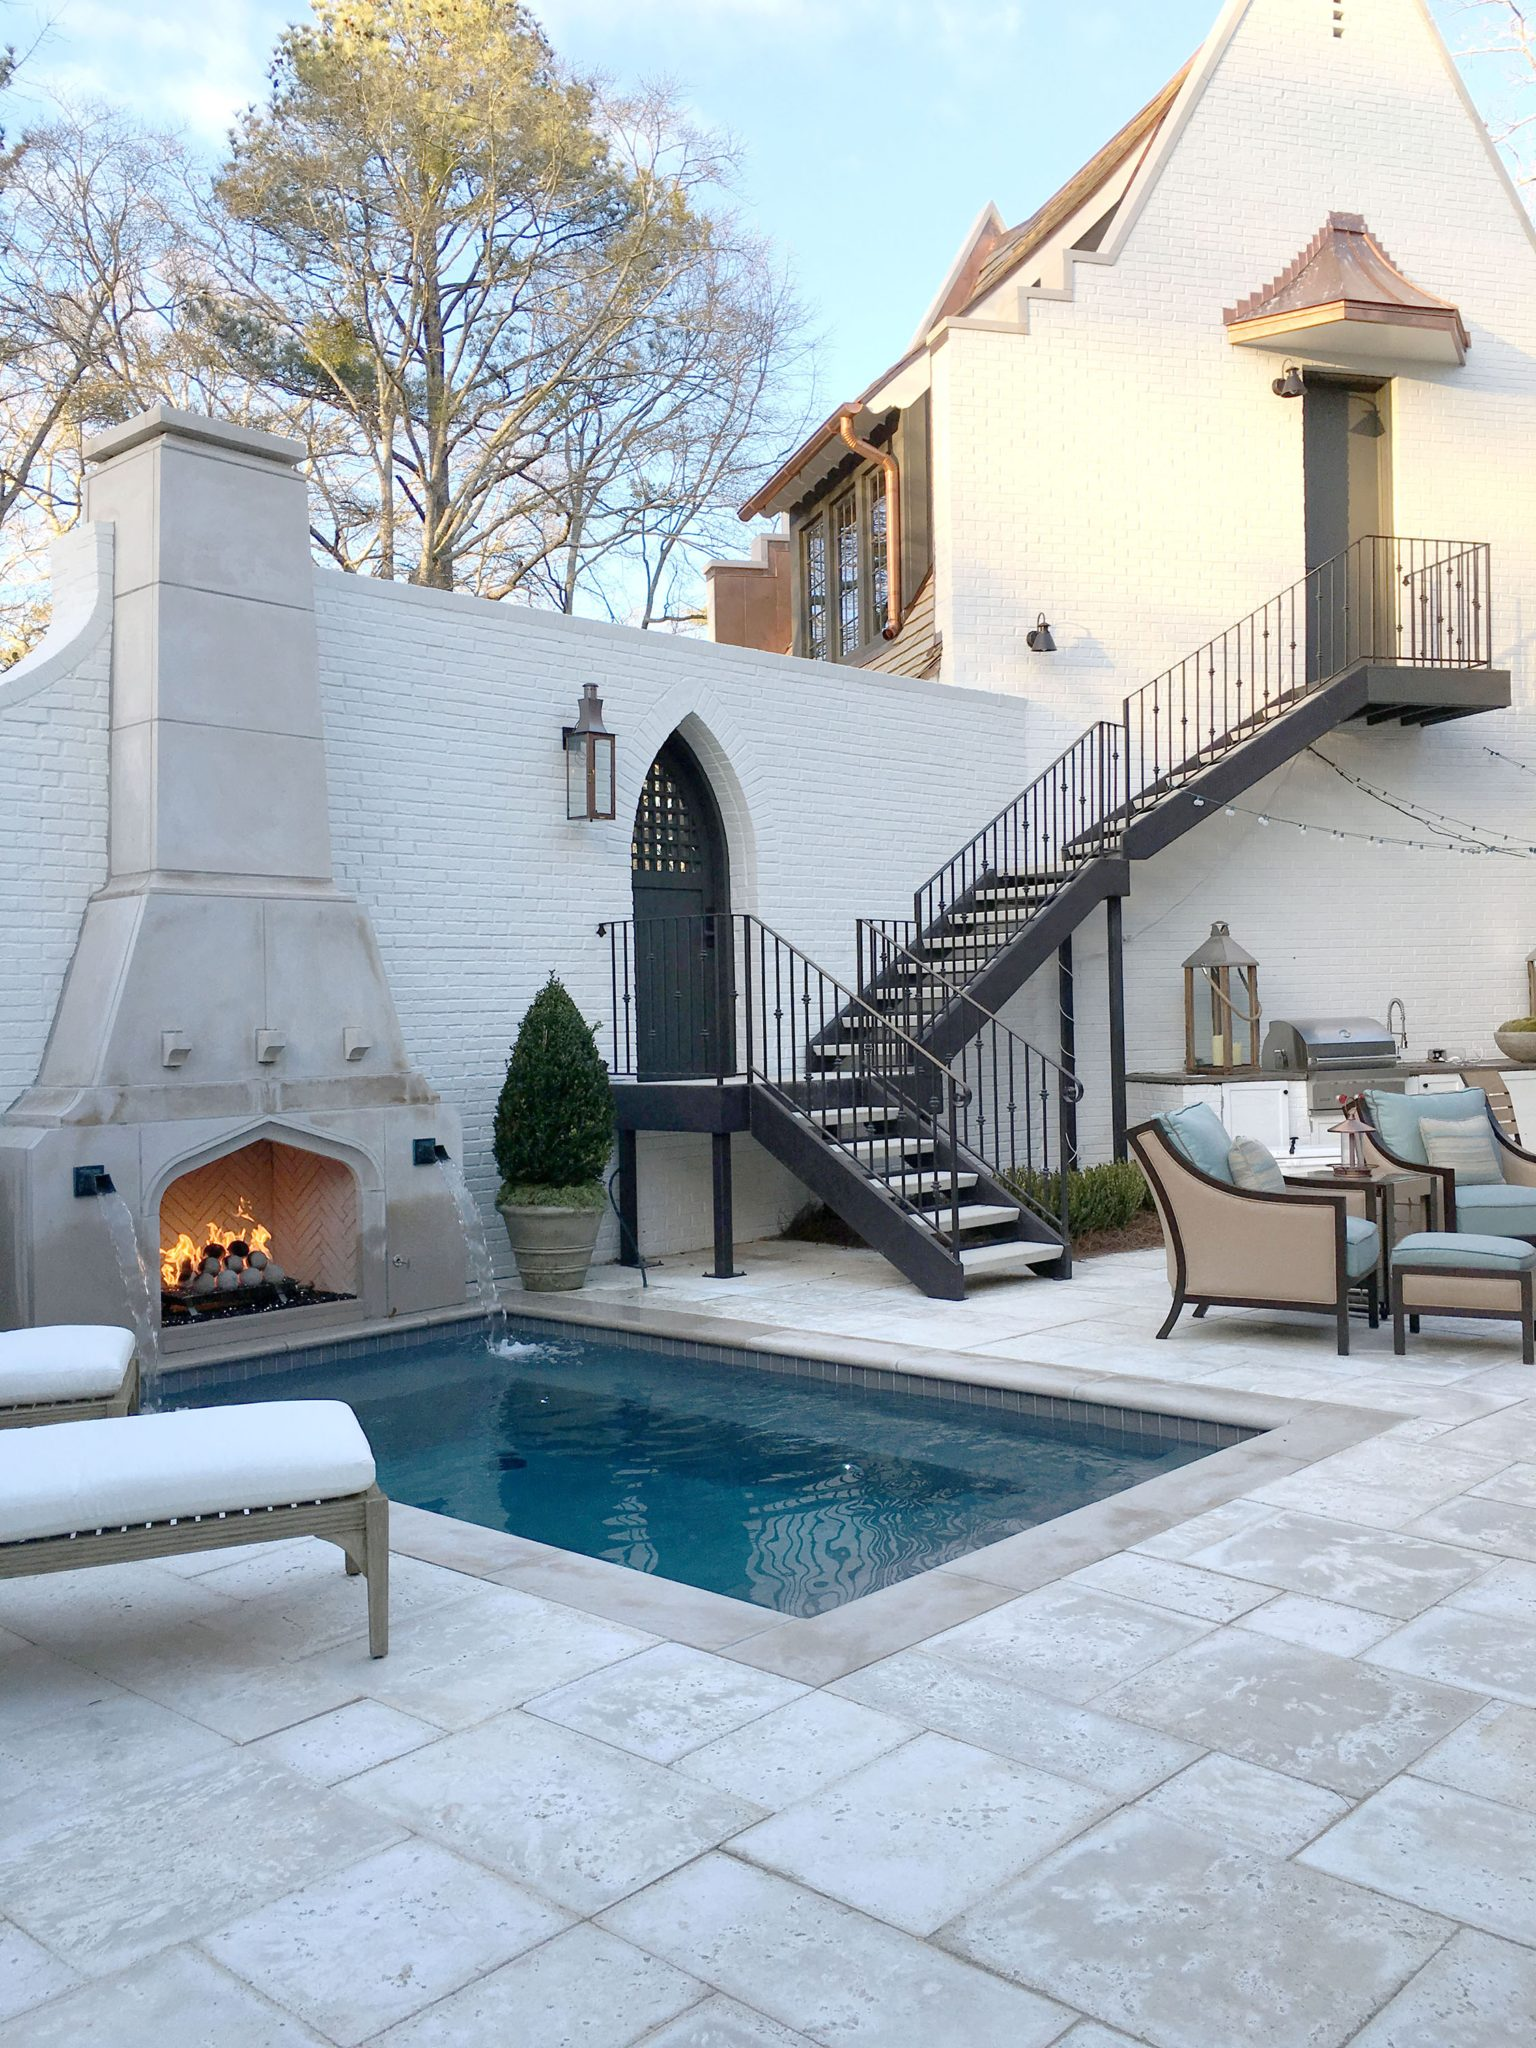 A beautiful courtyard features an outdoor kitchen, fireplace, and pool. The furnishings are from Summer Classics.